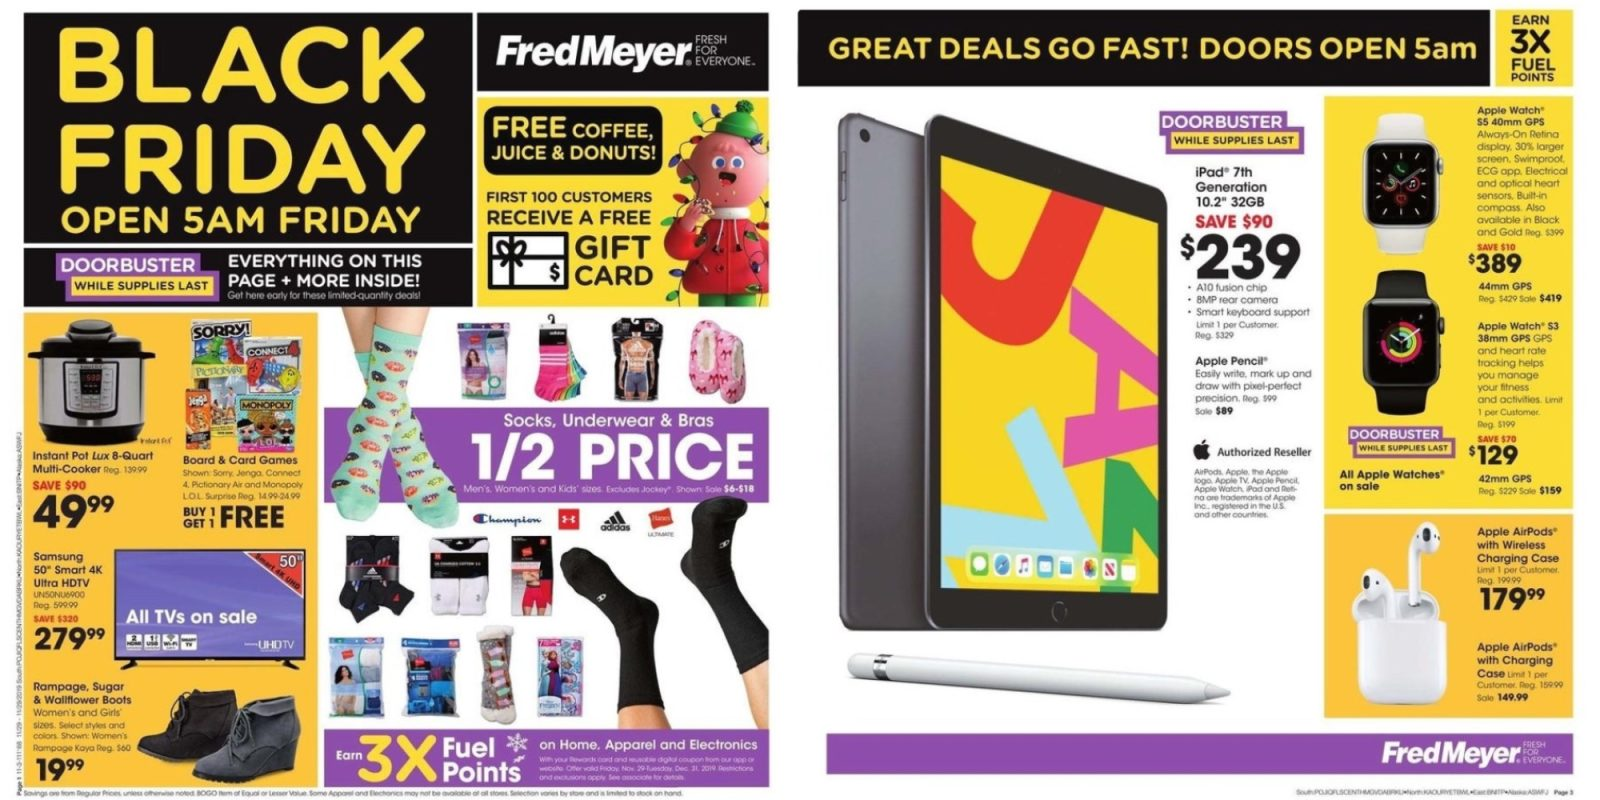 Fred Meyer Black Friday Ad 2019: Latest 10.2-inch iPad $239, Apple Watch from $129, more